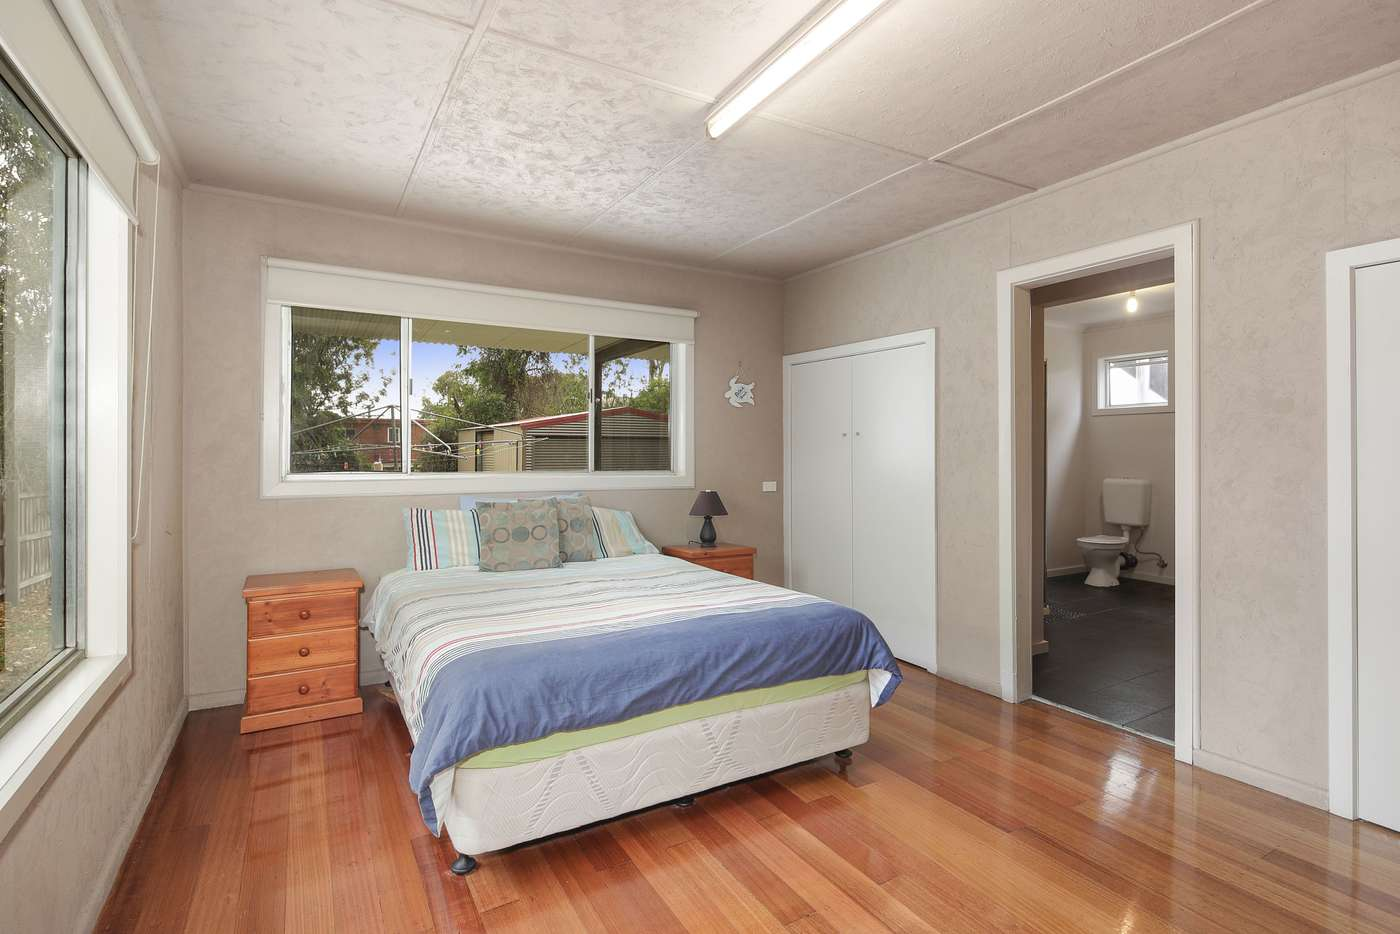 Sixth view of Homely house listing, 30 Koala Street, Cowes VIC 3922